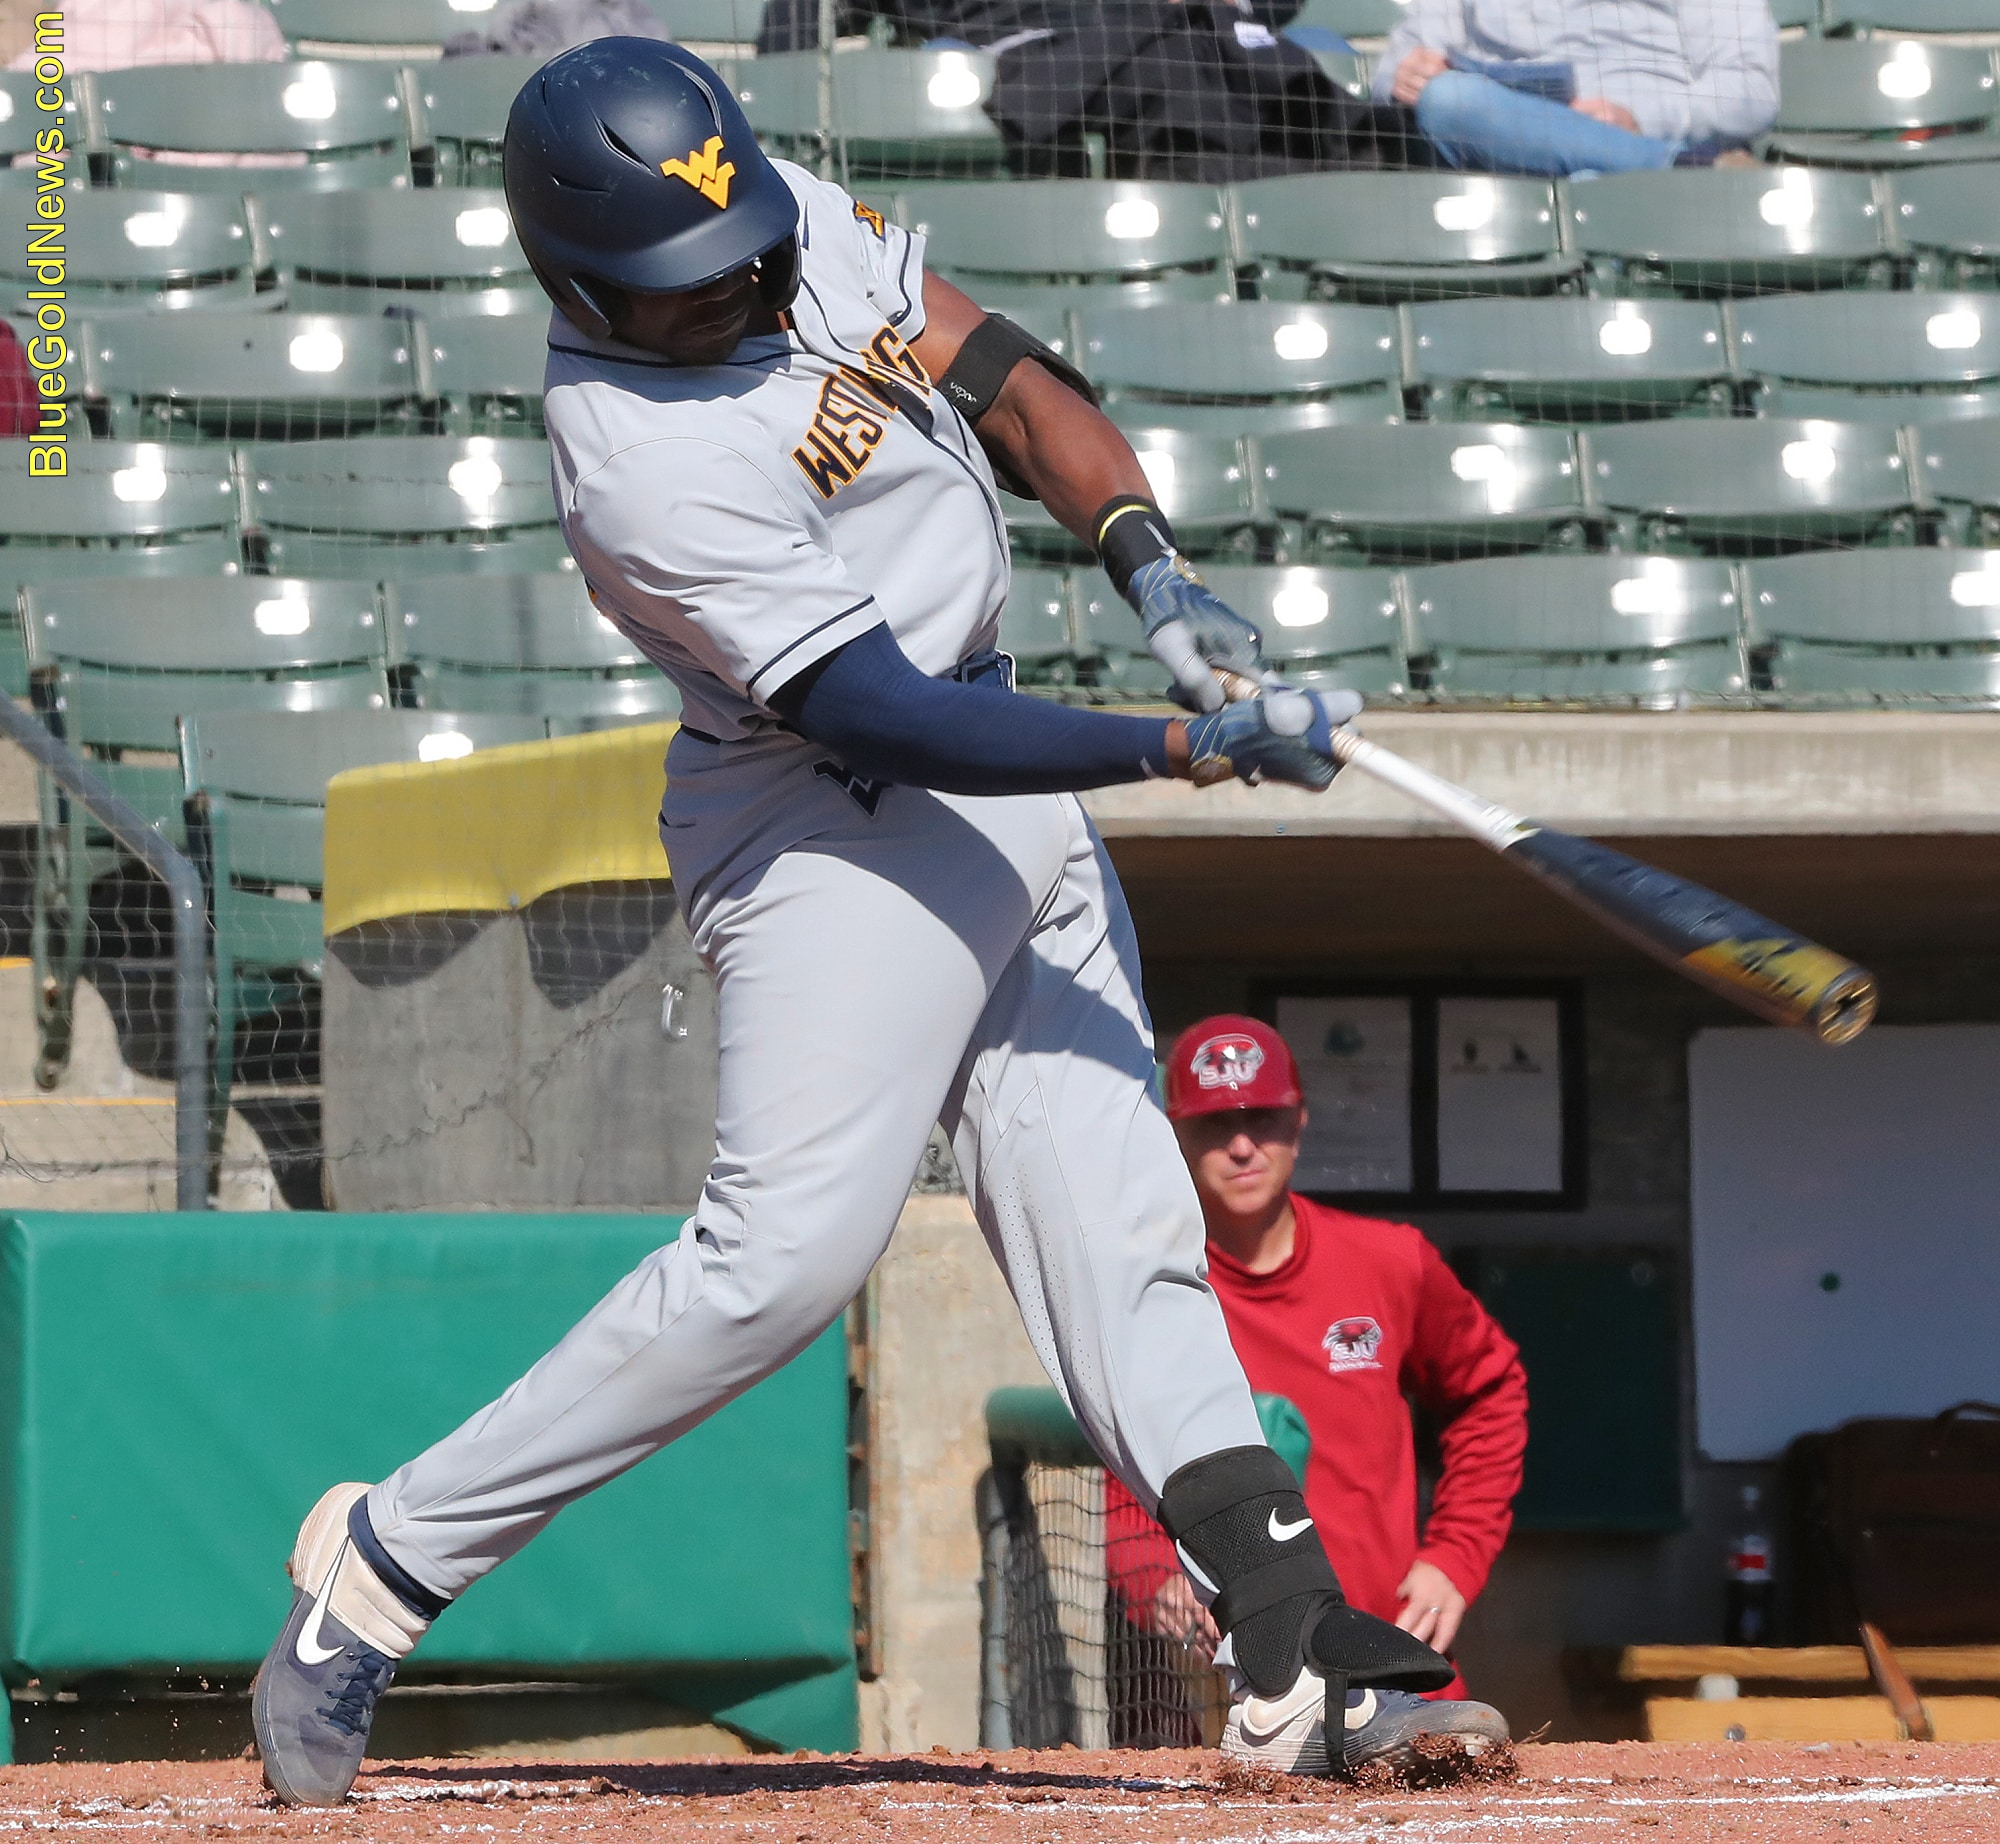 West Virginia catcher Paul McIntsoh crushes a solo home run to left against St. Joseph's